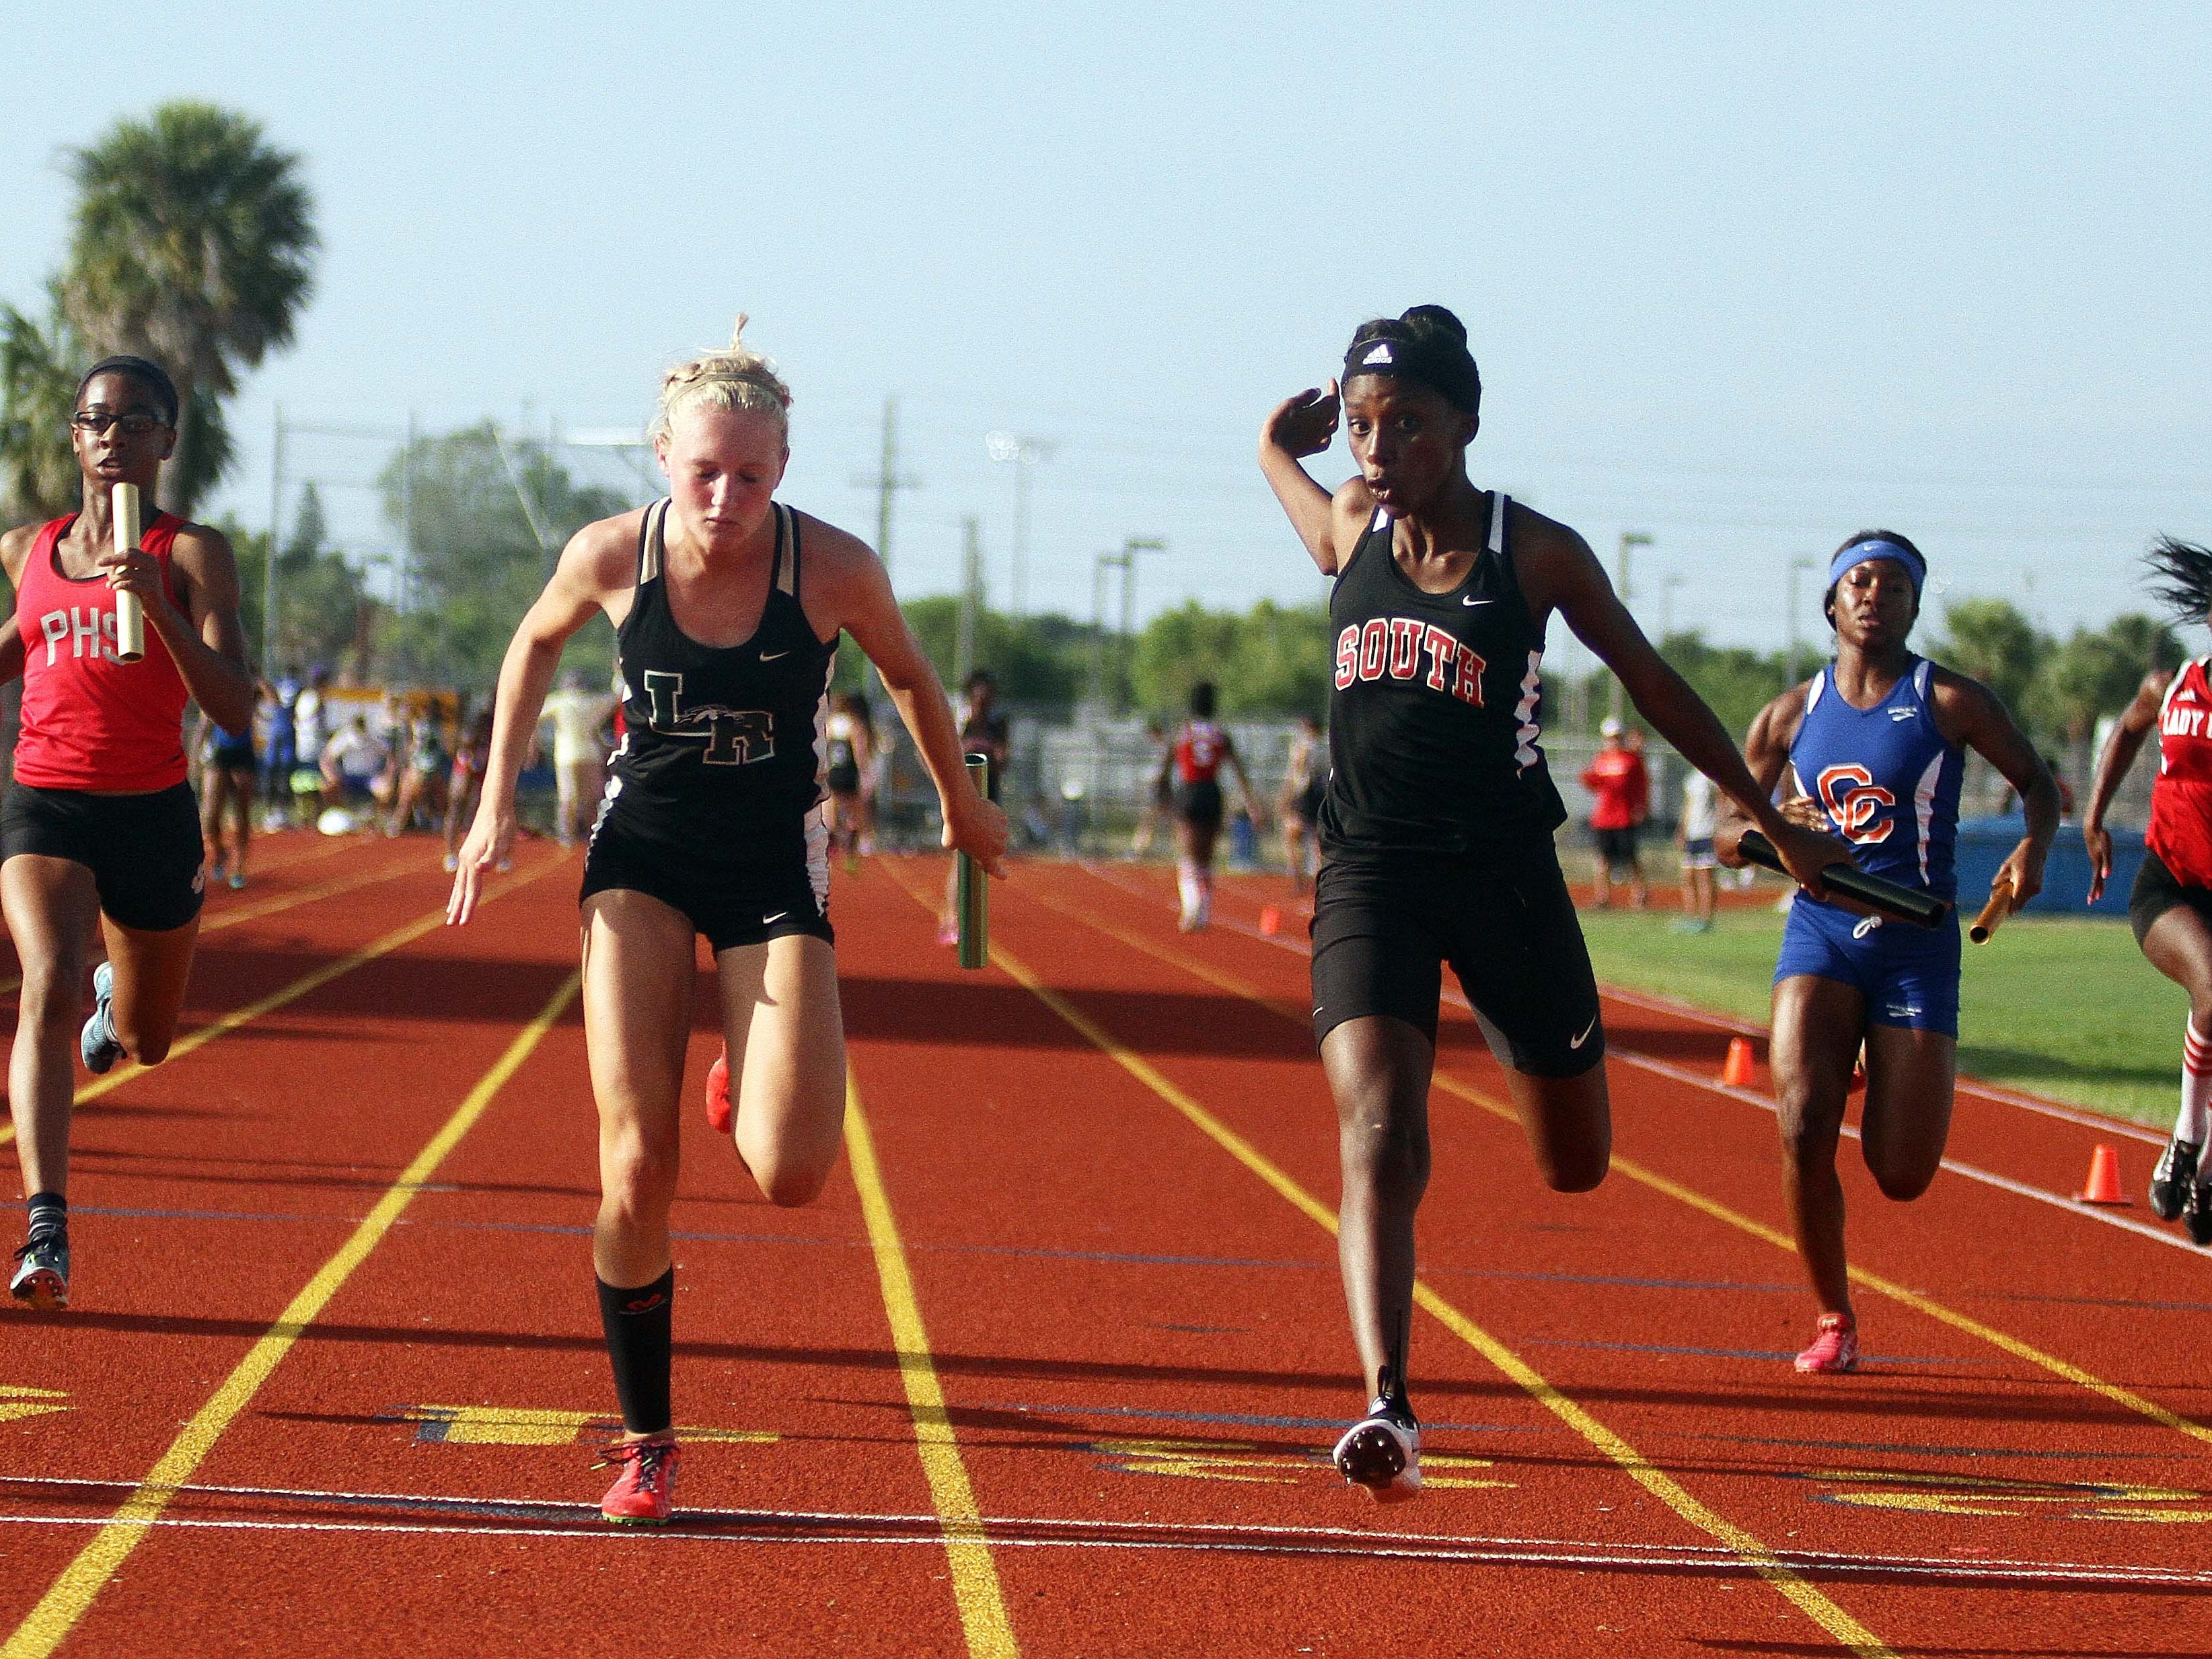 South Fort Myers' Mirlege Castor, center right, edges out Sophia Falco from Lakewood Ranch at the finish of the 400-meter girls relay Thursday at the Region 3A-3 track meet at Charlotte High School.